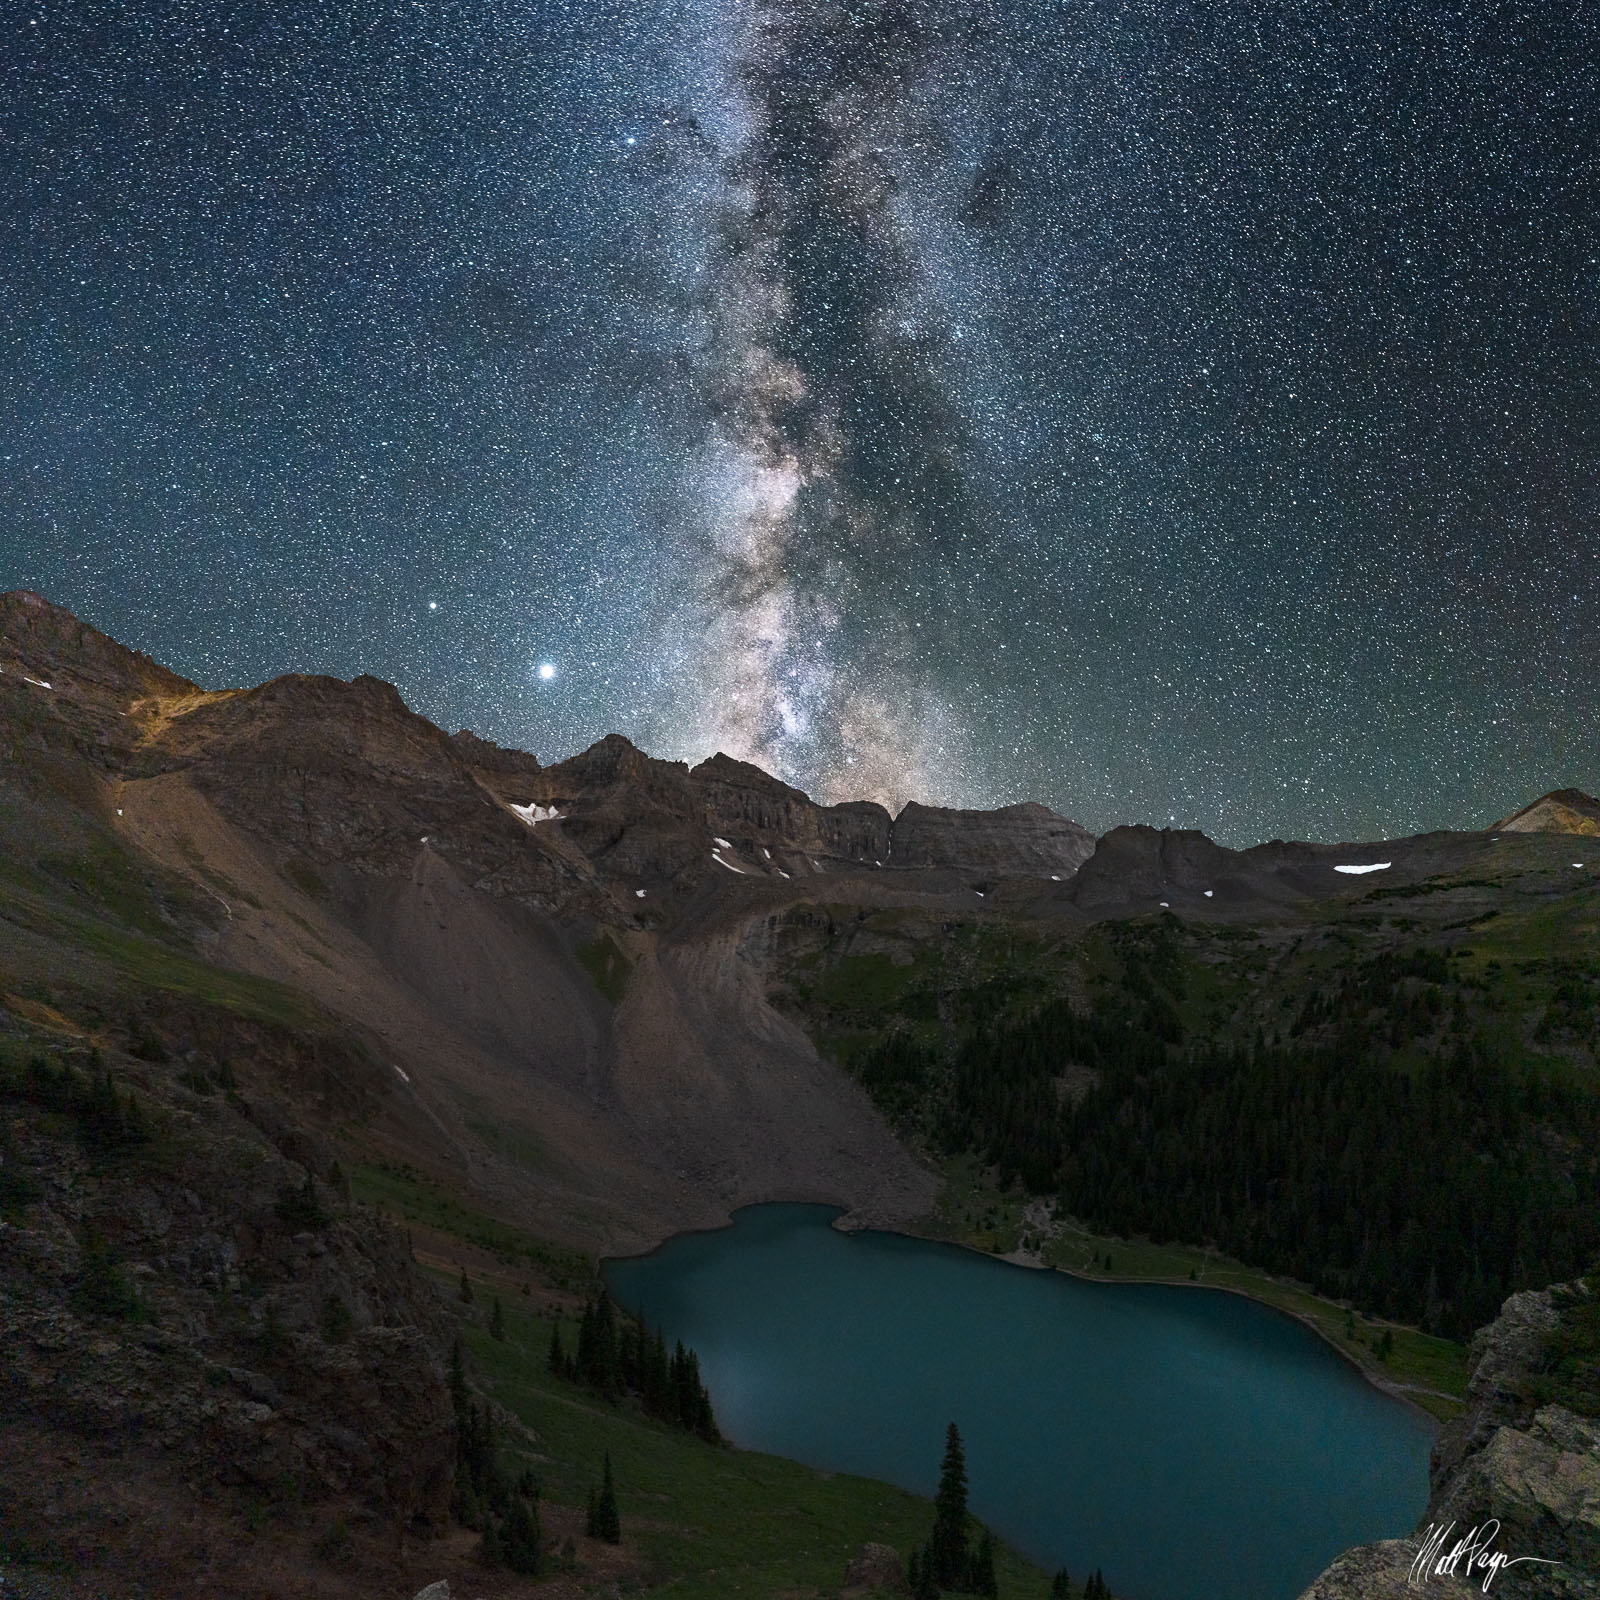 On a 3-day backpacking trip in the summer of 2020, I wanted to get a photograph of the Milky Way directly above Blue Lake and...